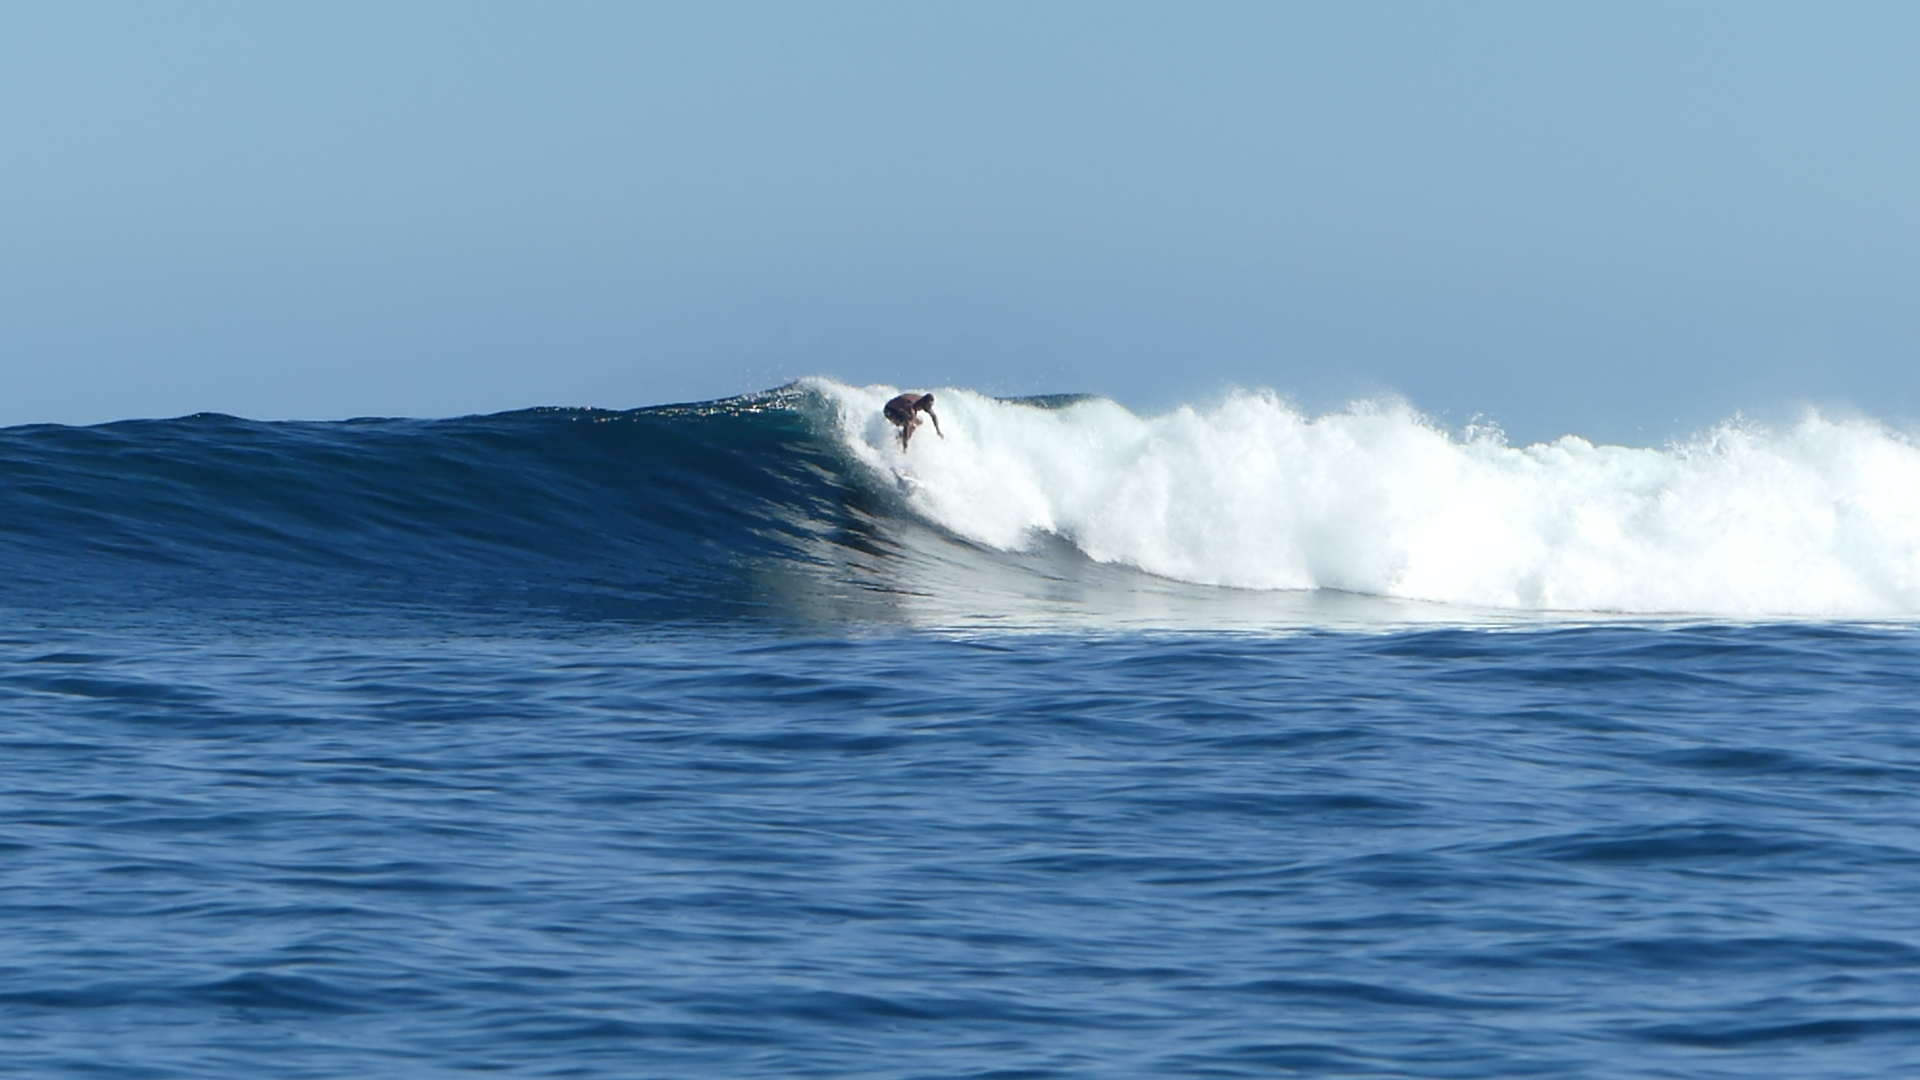 Silky drops, Justin West Coaching enjoying some surfing alone time